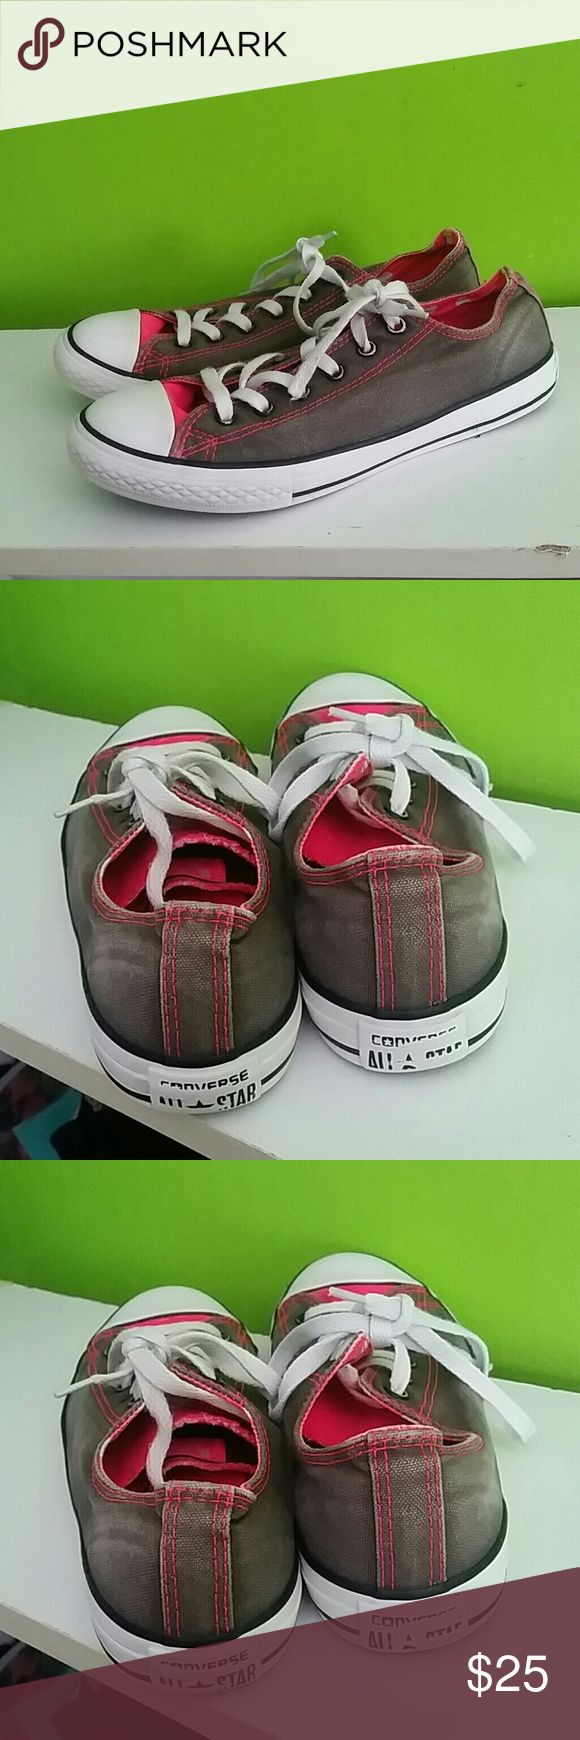 Women's Converse White & Pink Shoes Size 5 Up for sale is a women's pair of Converse White & Pink Shoes.  Size 5. Used but in good condition.  No rips tears or stains. I will take any reasonable offers.  Any questions? Please ask. Thanks for looking and have a great day! Converse Shoes Sneakers